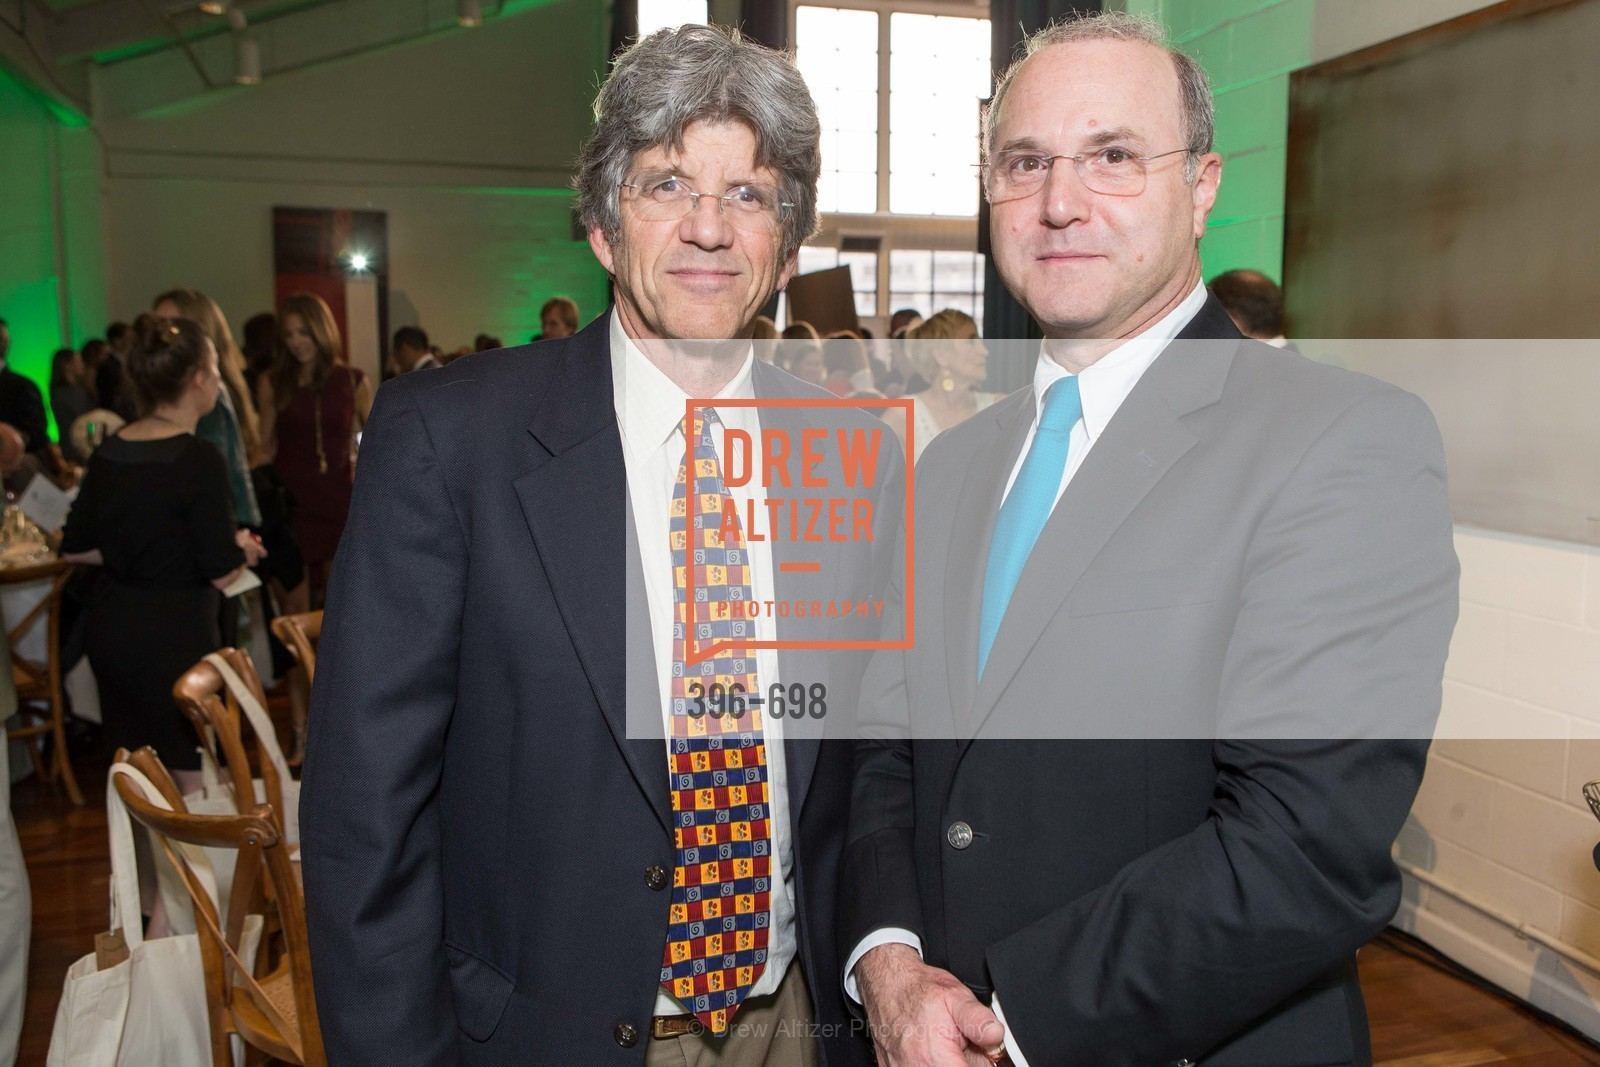 Steve Drace, Pierre Sivac, EWG's 6th Annual Earth Dinner, US, May 5th, 2015,Drew Altizer, Drew Altizer Photography, full-service agency, private events, San Francisco photographer, photographer california